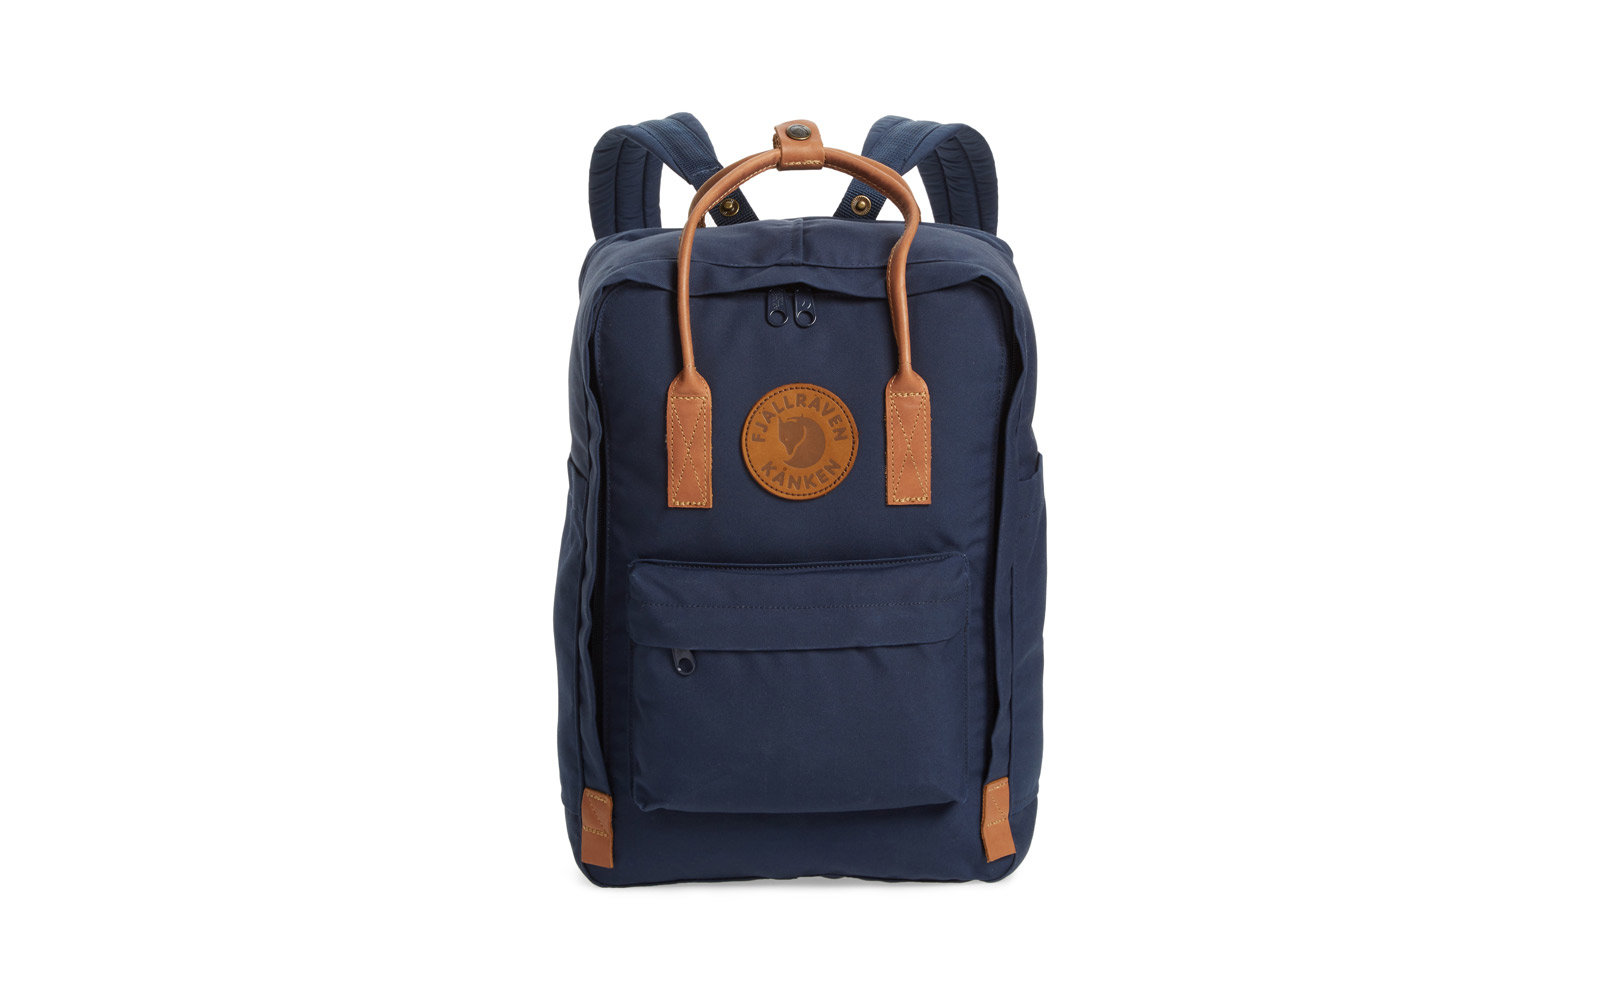 Best Waterproof Laptop Backpack  Fjallraven Kanken 595aaa12835cd